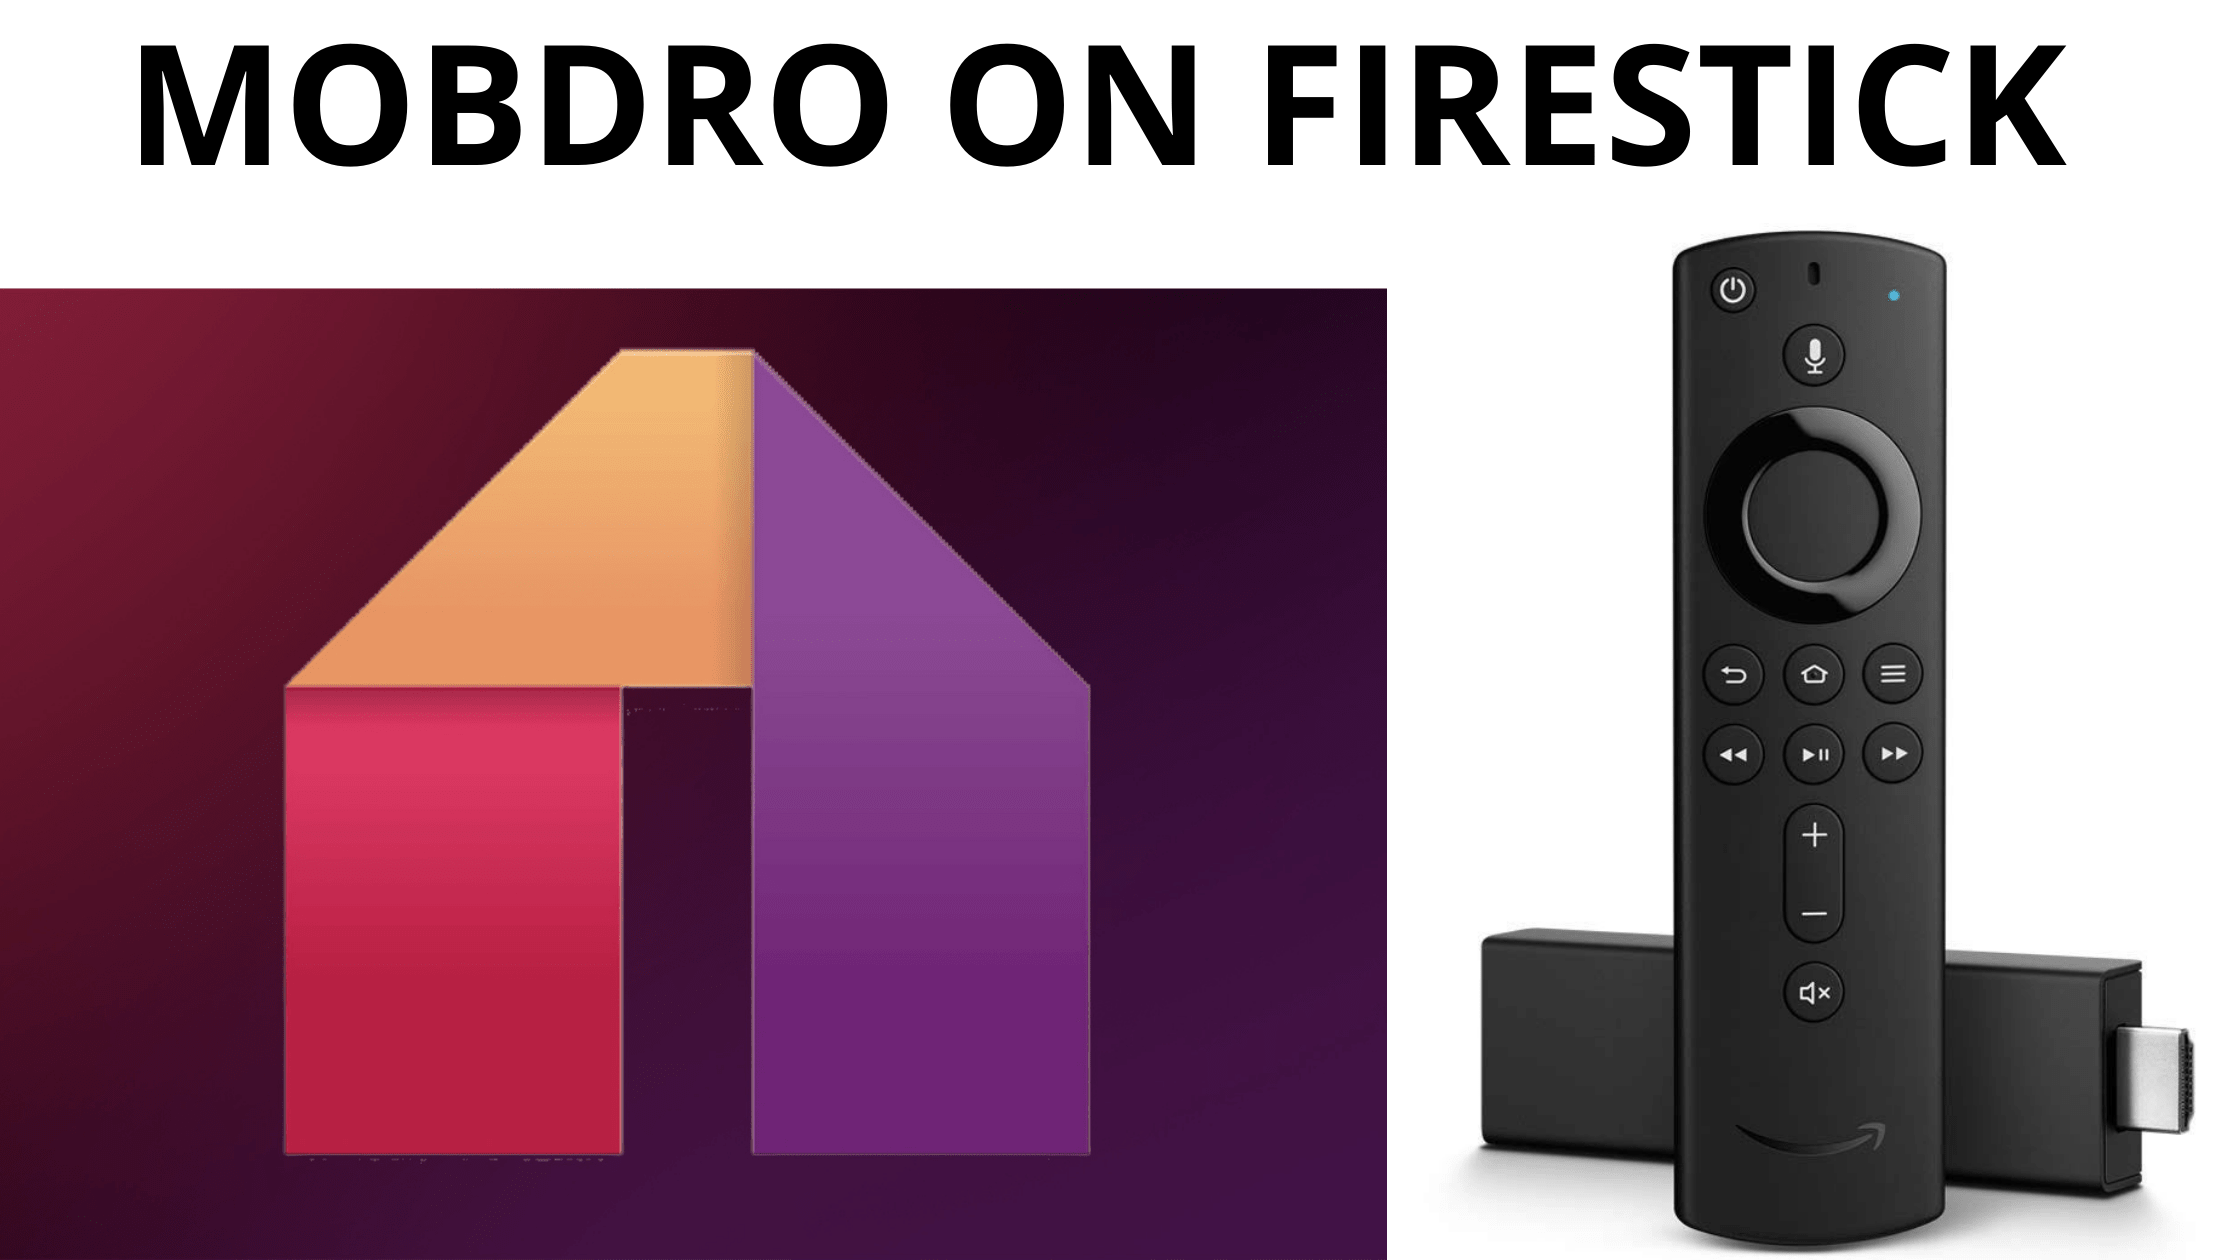 How to Download and Install Mobdro on Firestick - Apps For Smart Tv